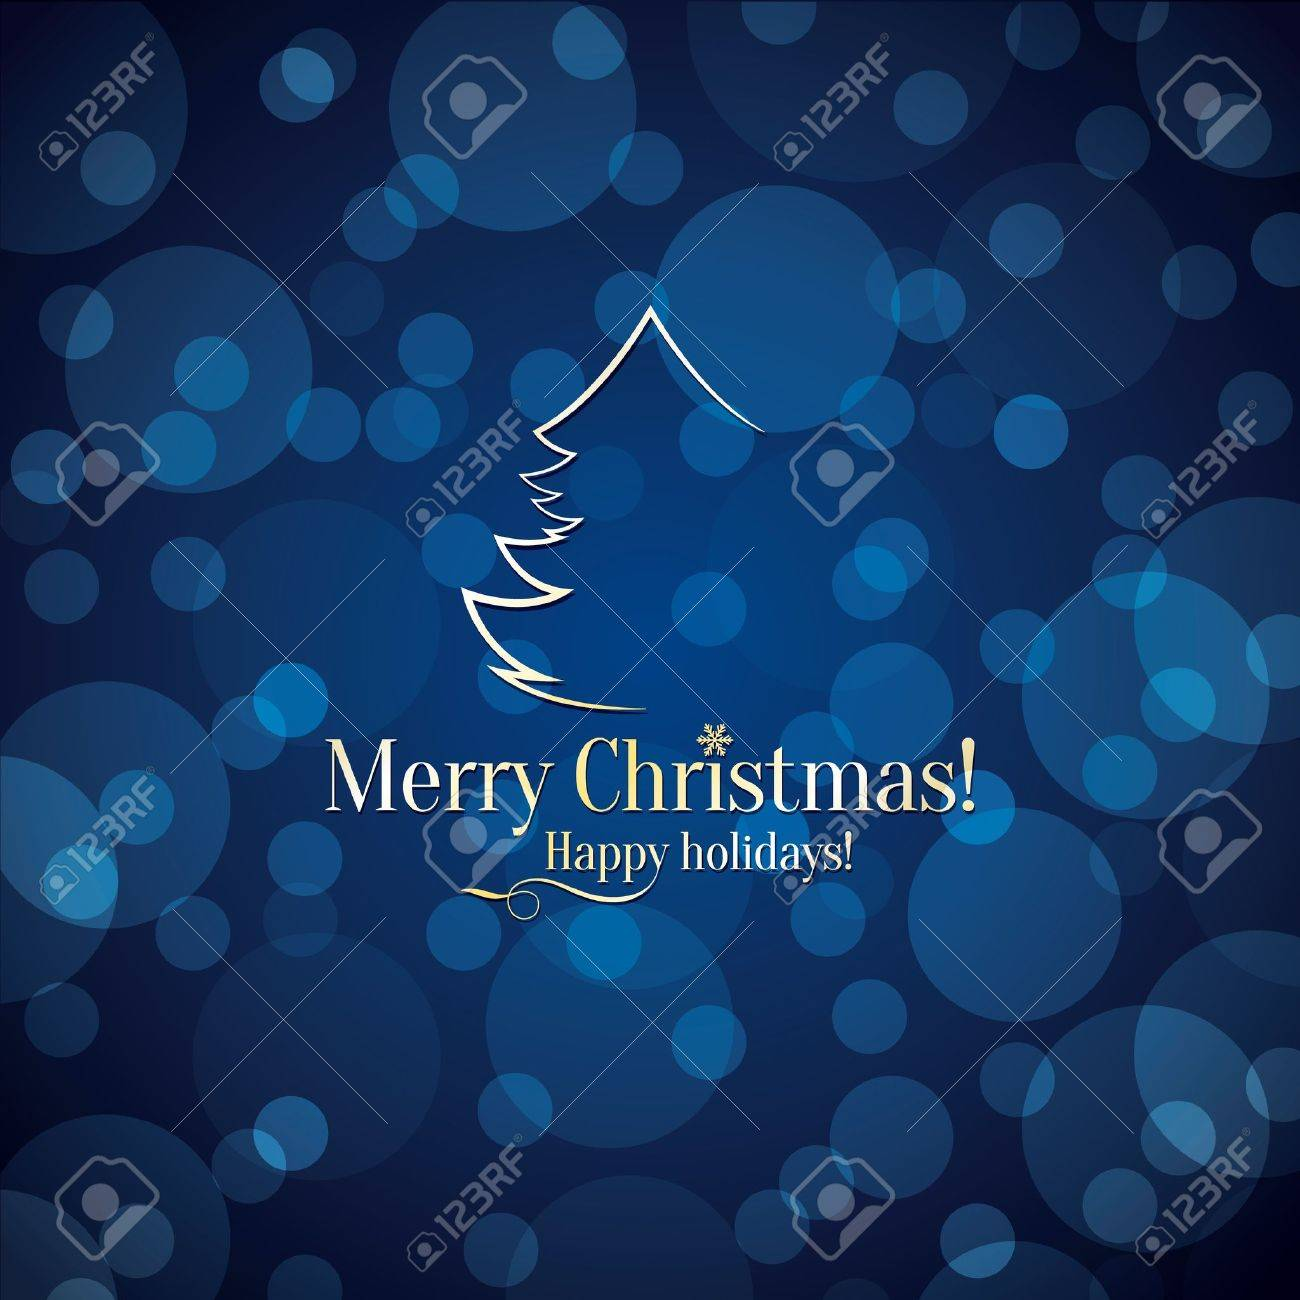 Christmas and New Year greeting card Stock Vector - 21191435